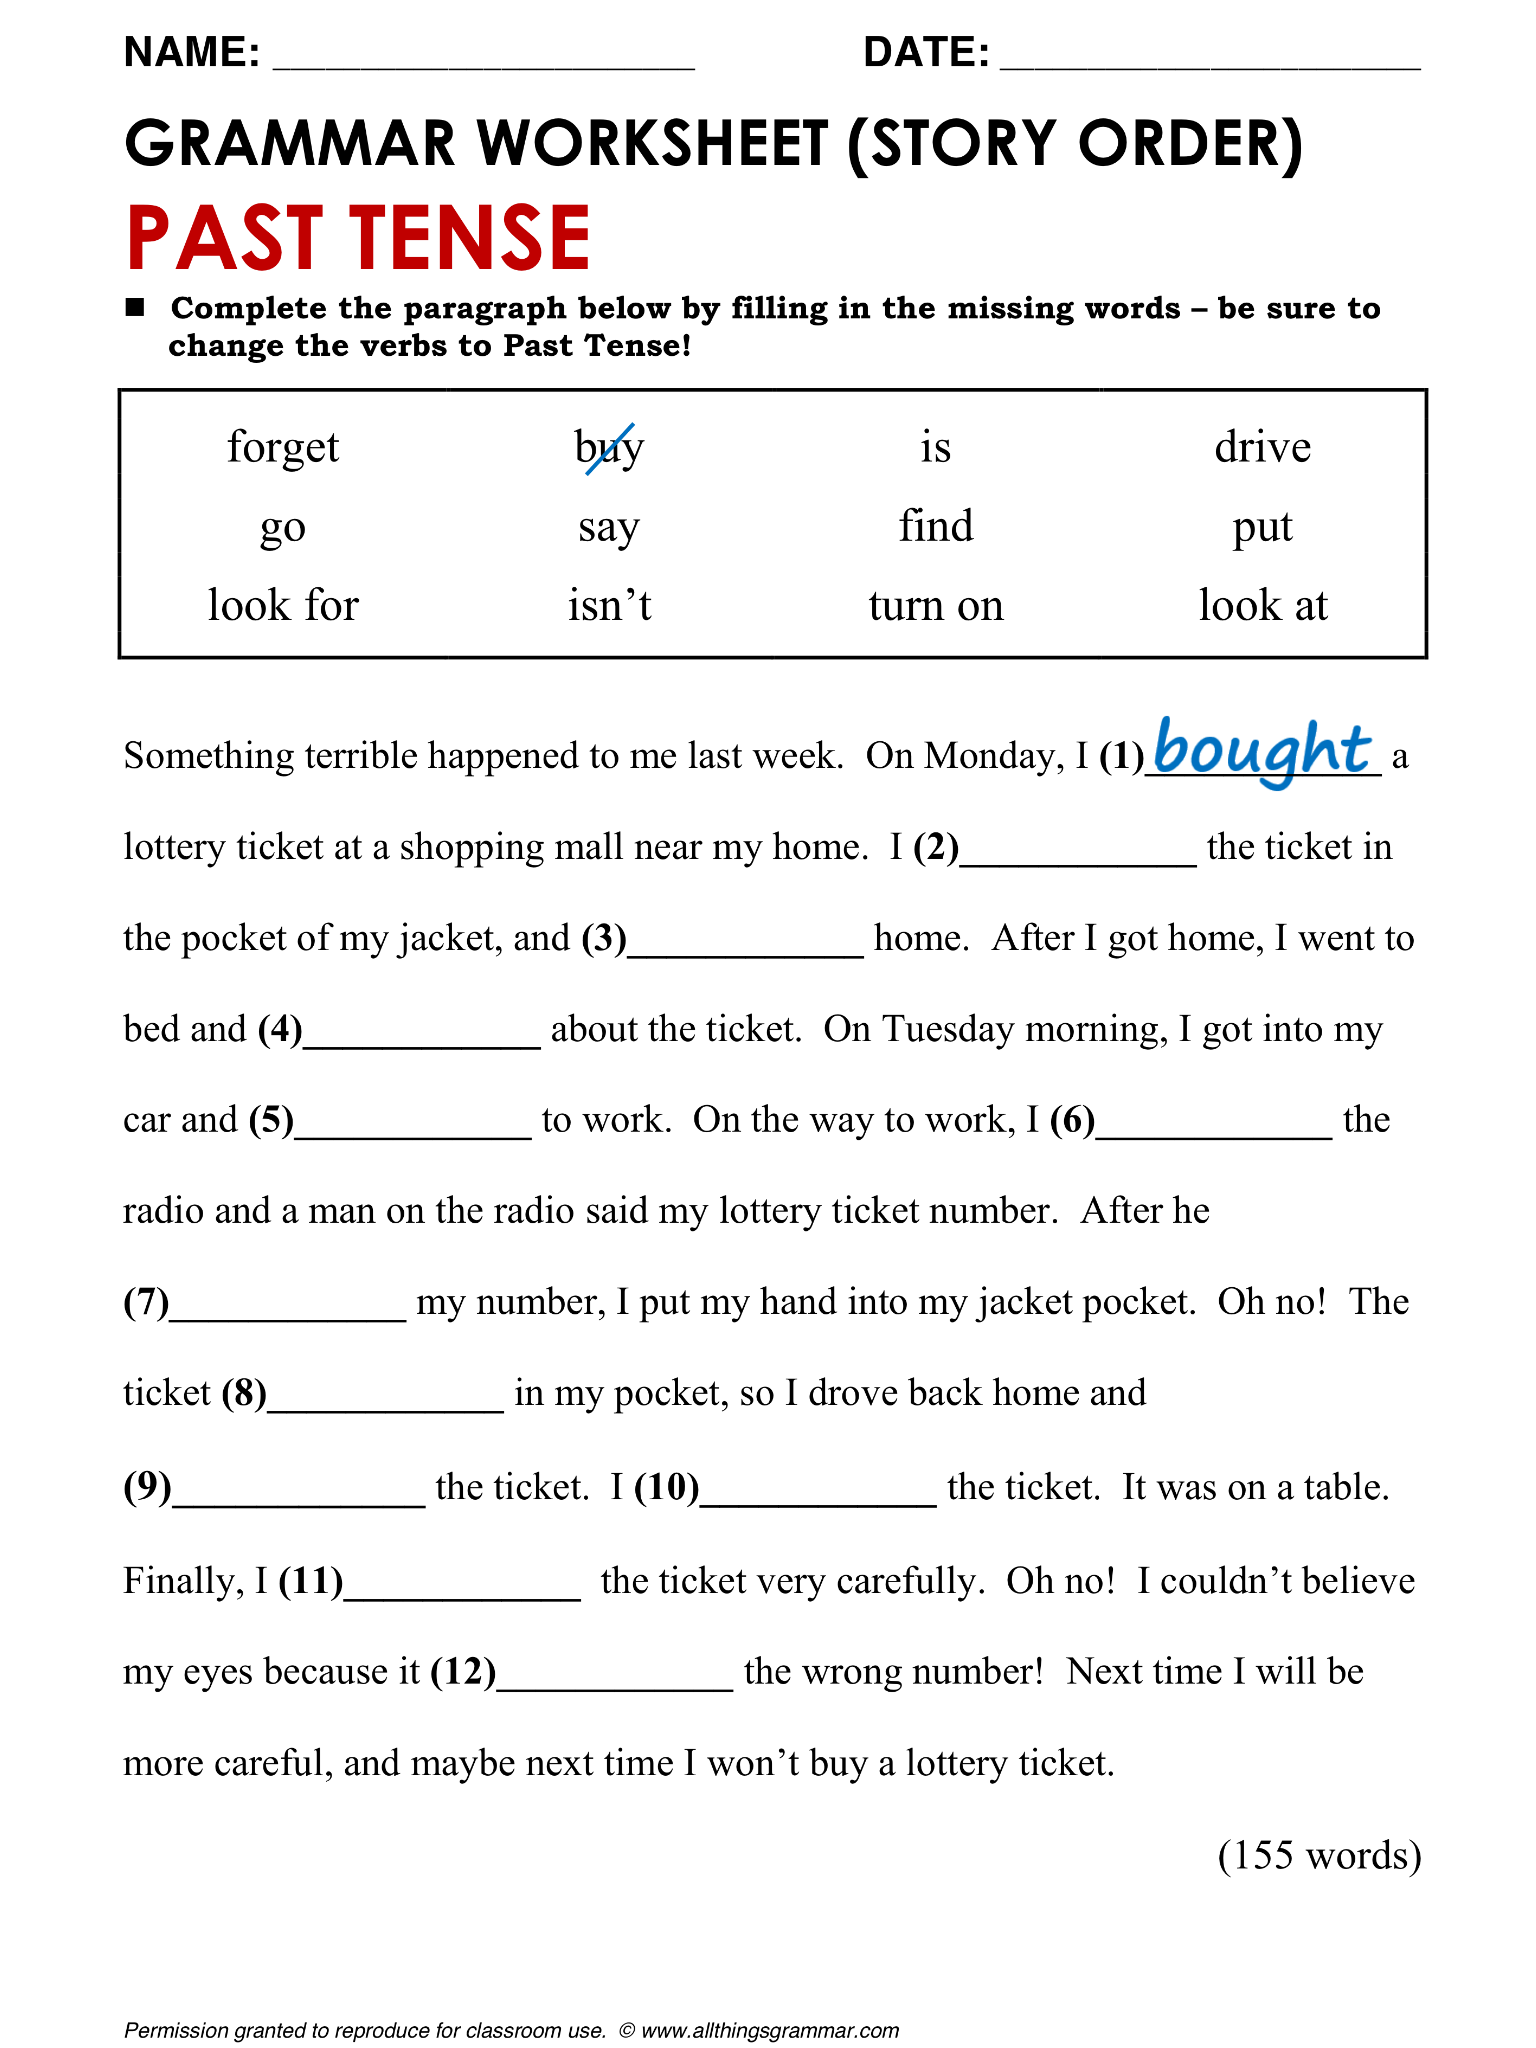 Simple Past Tense Worksheets For Grade 3 [ 2048 x 1536 Pixel ]